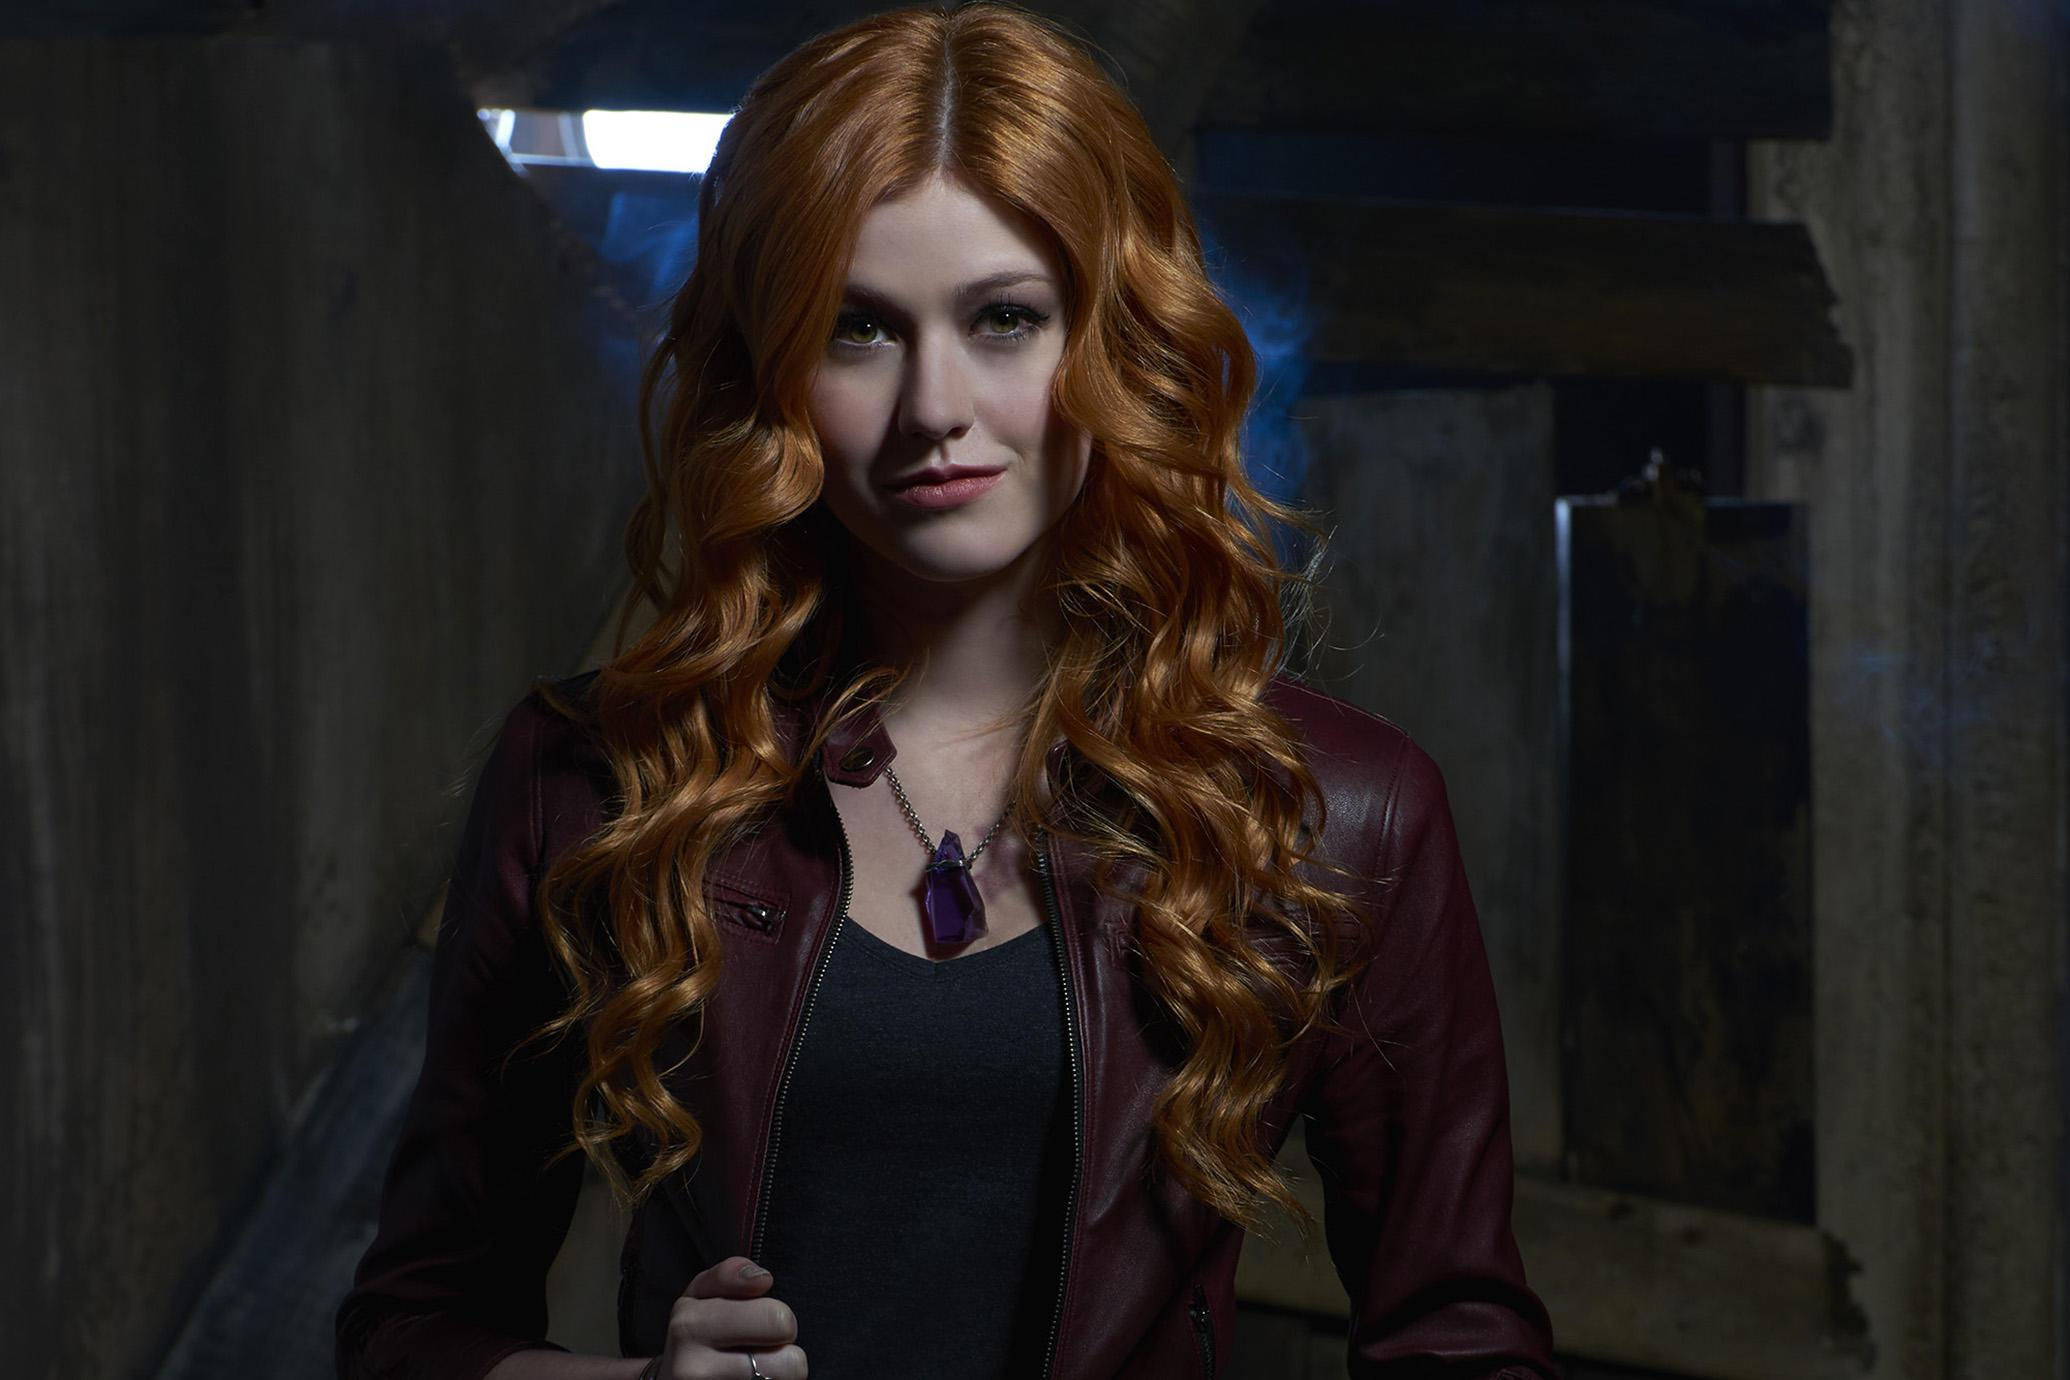 Shadowhunters Wallpaper HD #g7zlya1a – Yoanu